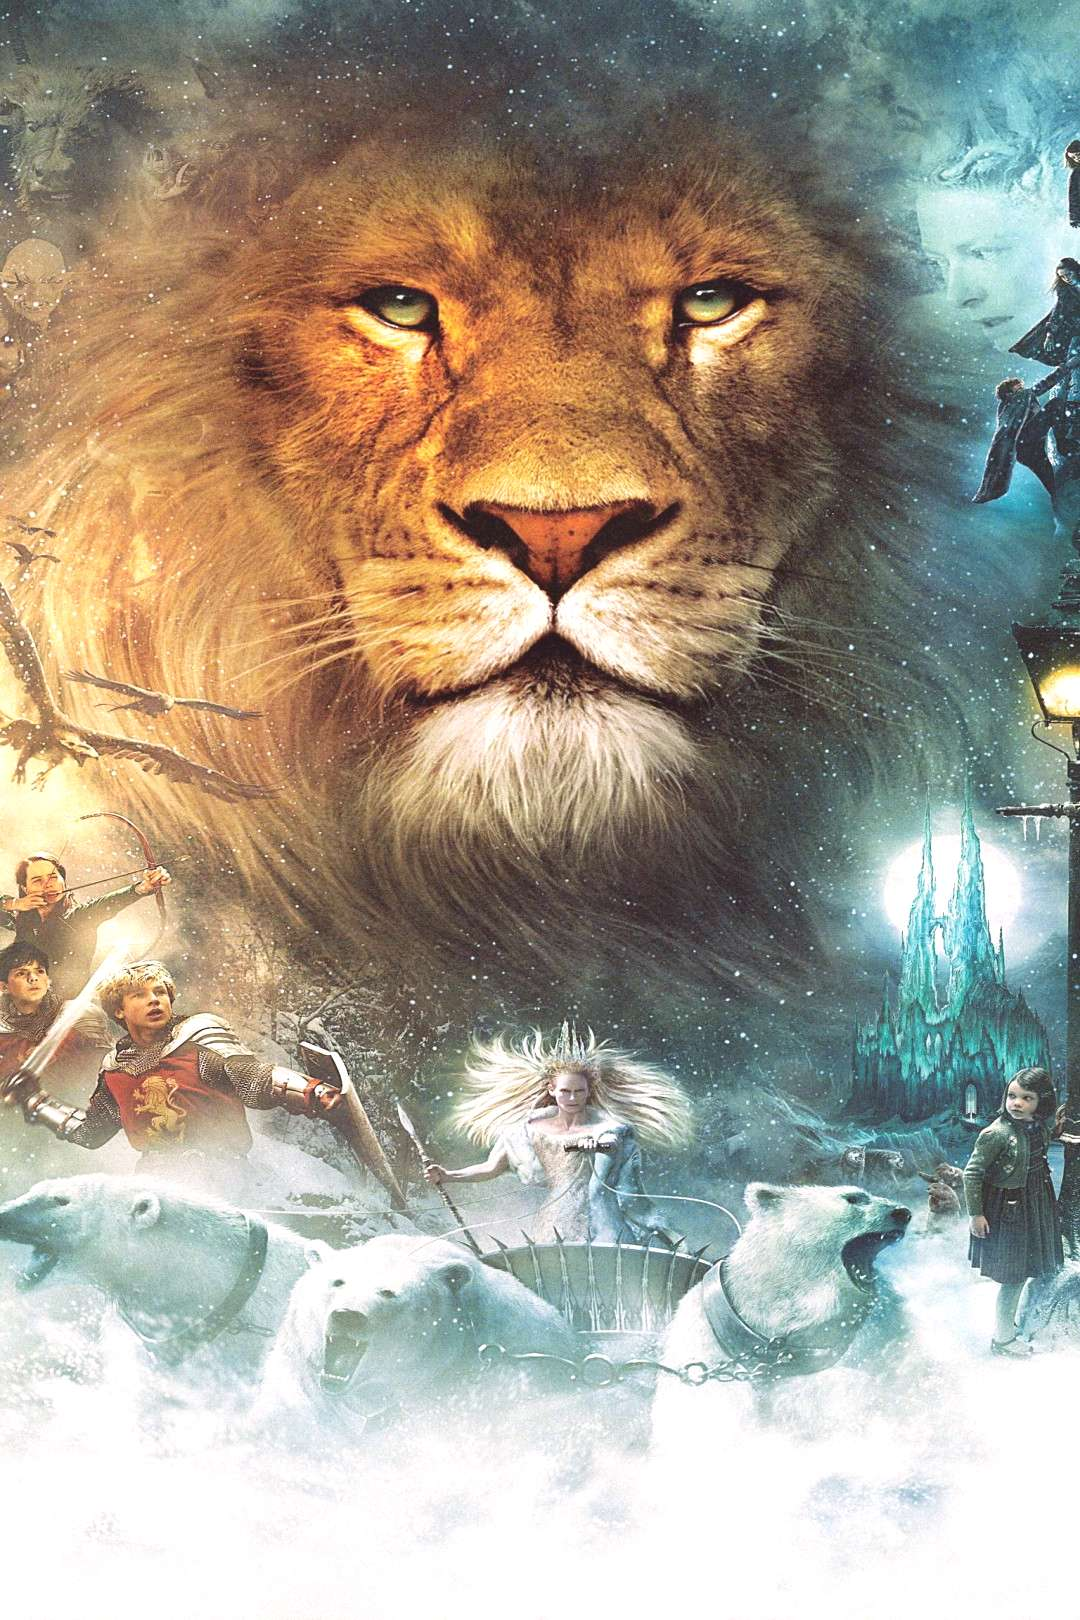 The Chronicles of Narnia The Lion, the Witch and the Wardrobe (2005) Phone Wallpaper | Moviemania